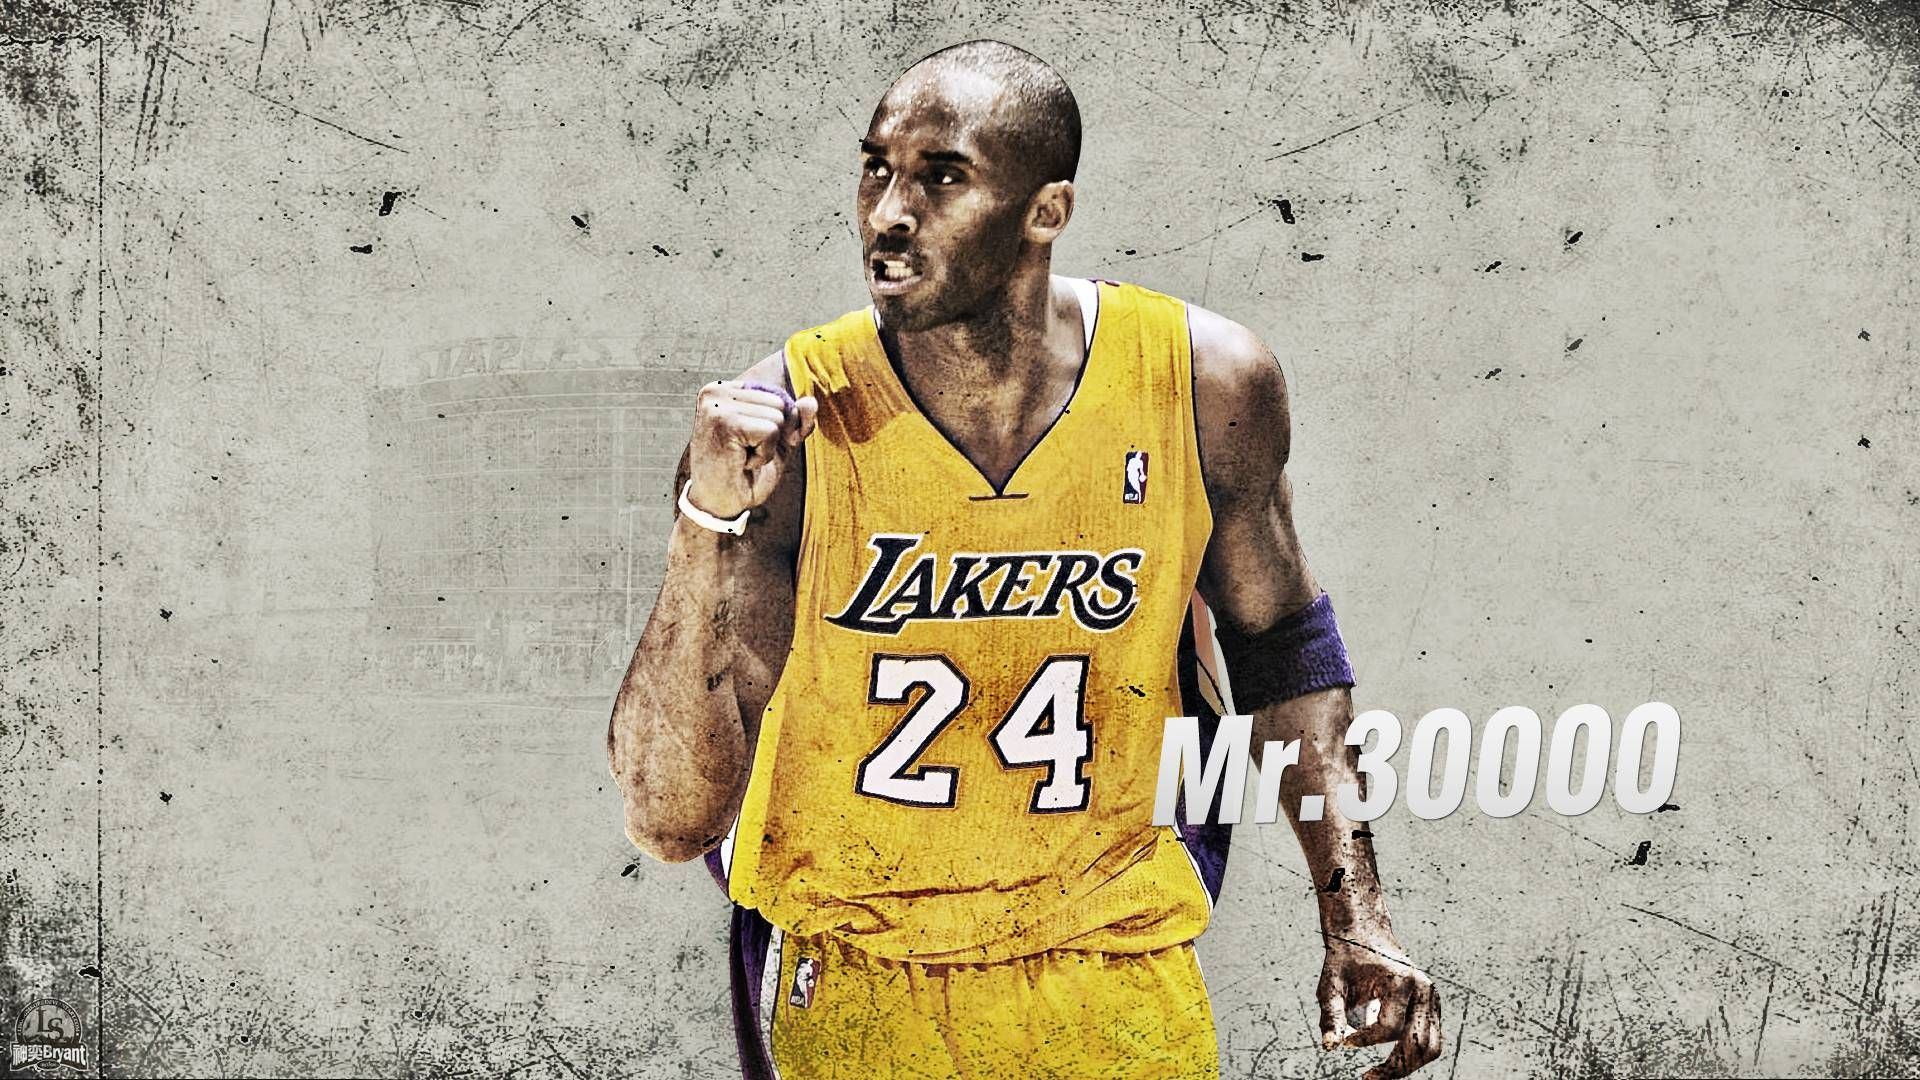 Kobe bryant black mamba lakers legend wallpaper download kobe bryant black mamba lakers legend wallpaper voltagebd Image collections